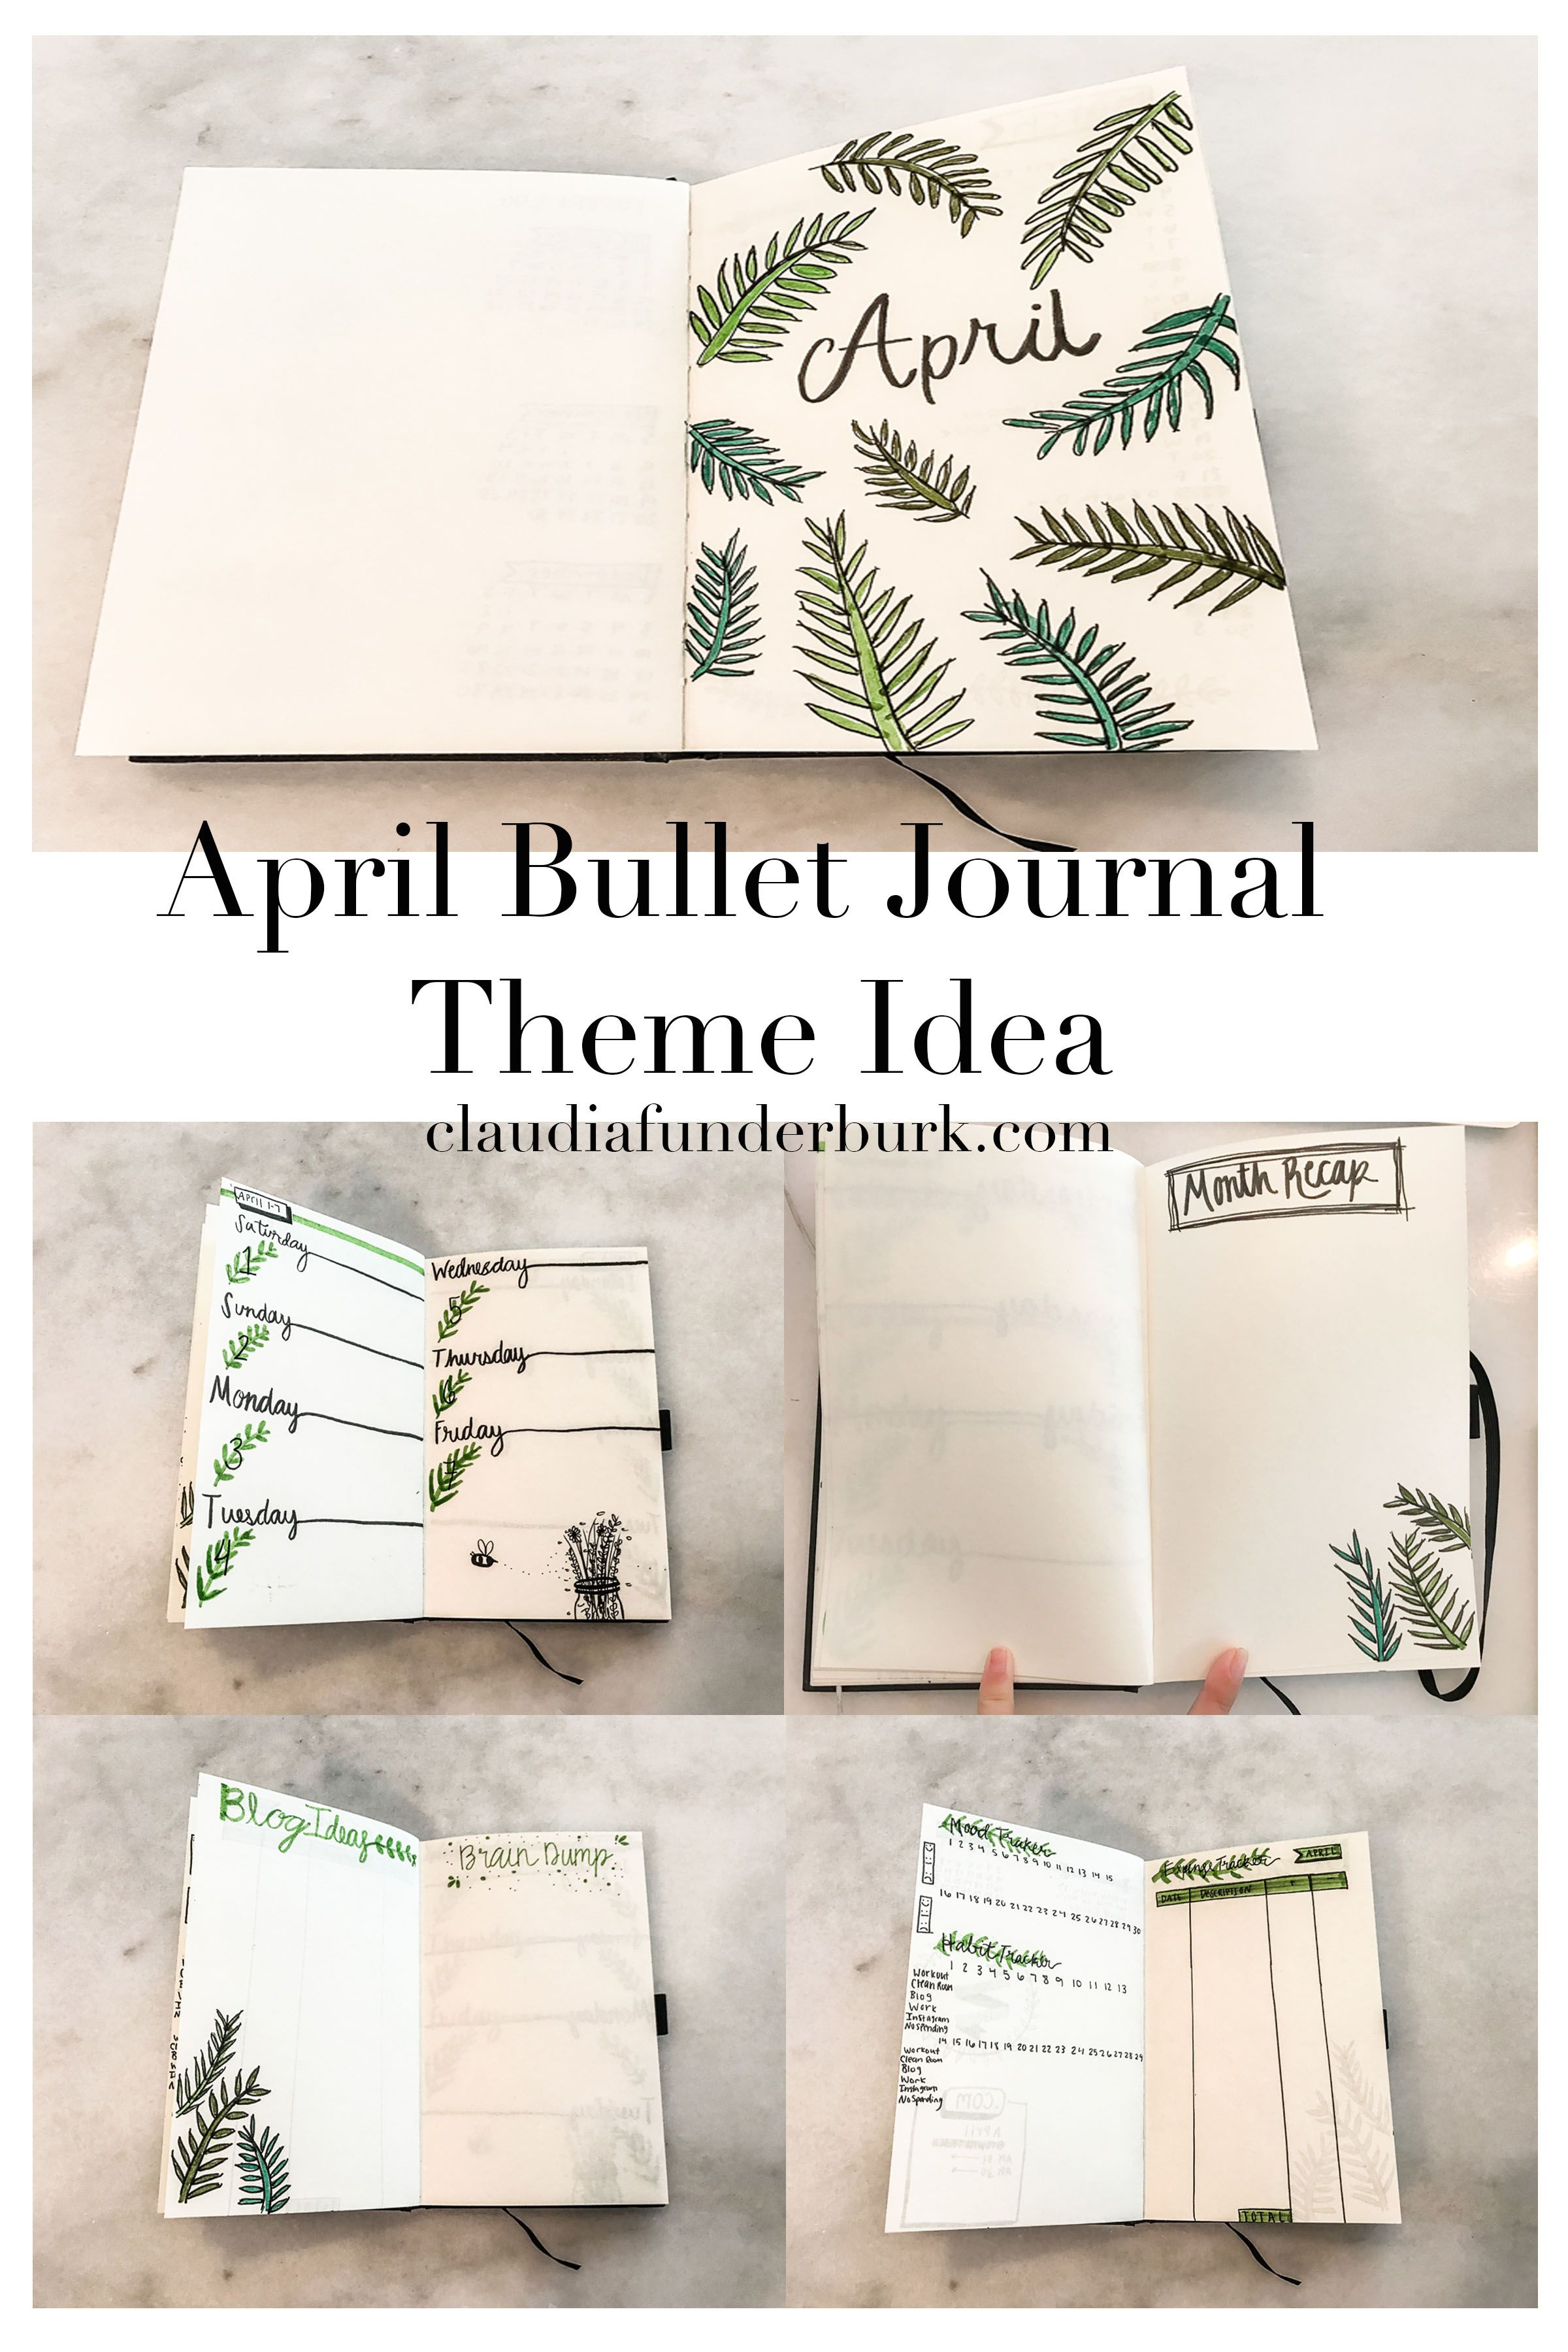 Pin by claudia funderburk on do it yourself pinterest bullet plan with me april 2018 bullet journal inspiration bullet journal ideas solutioingenieria Choice Image